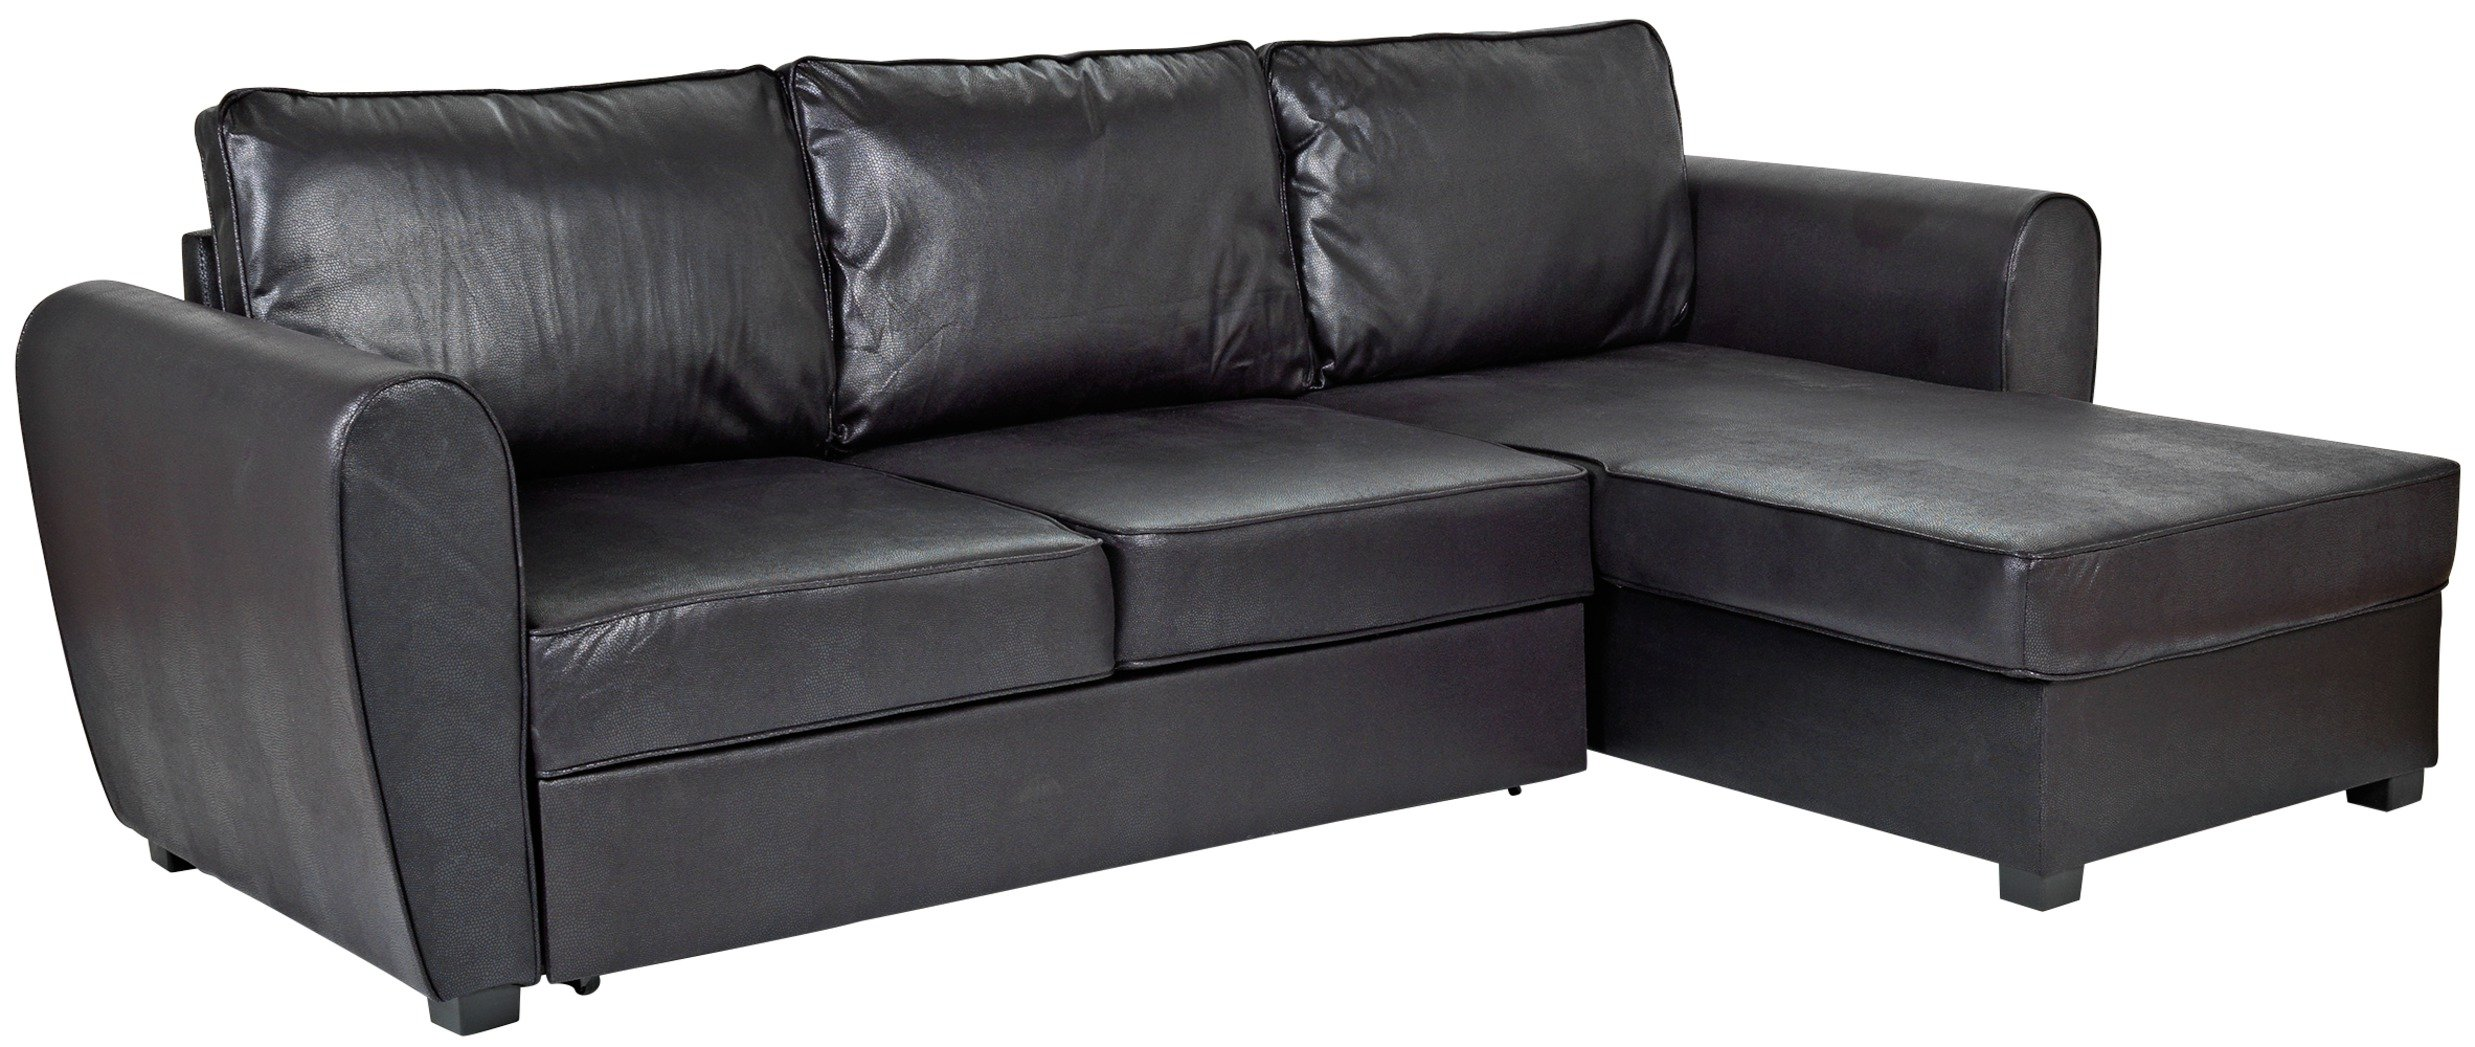 Buy chair beds sofa beds chairbeds and futons at for Chaise longue sofa bed argos